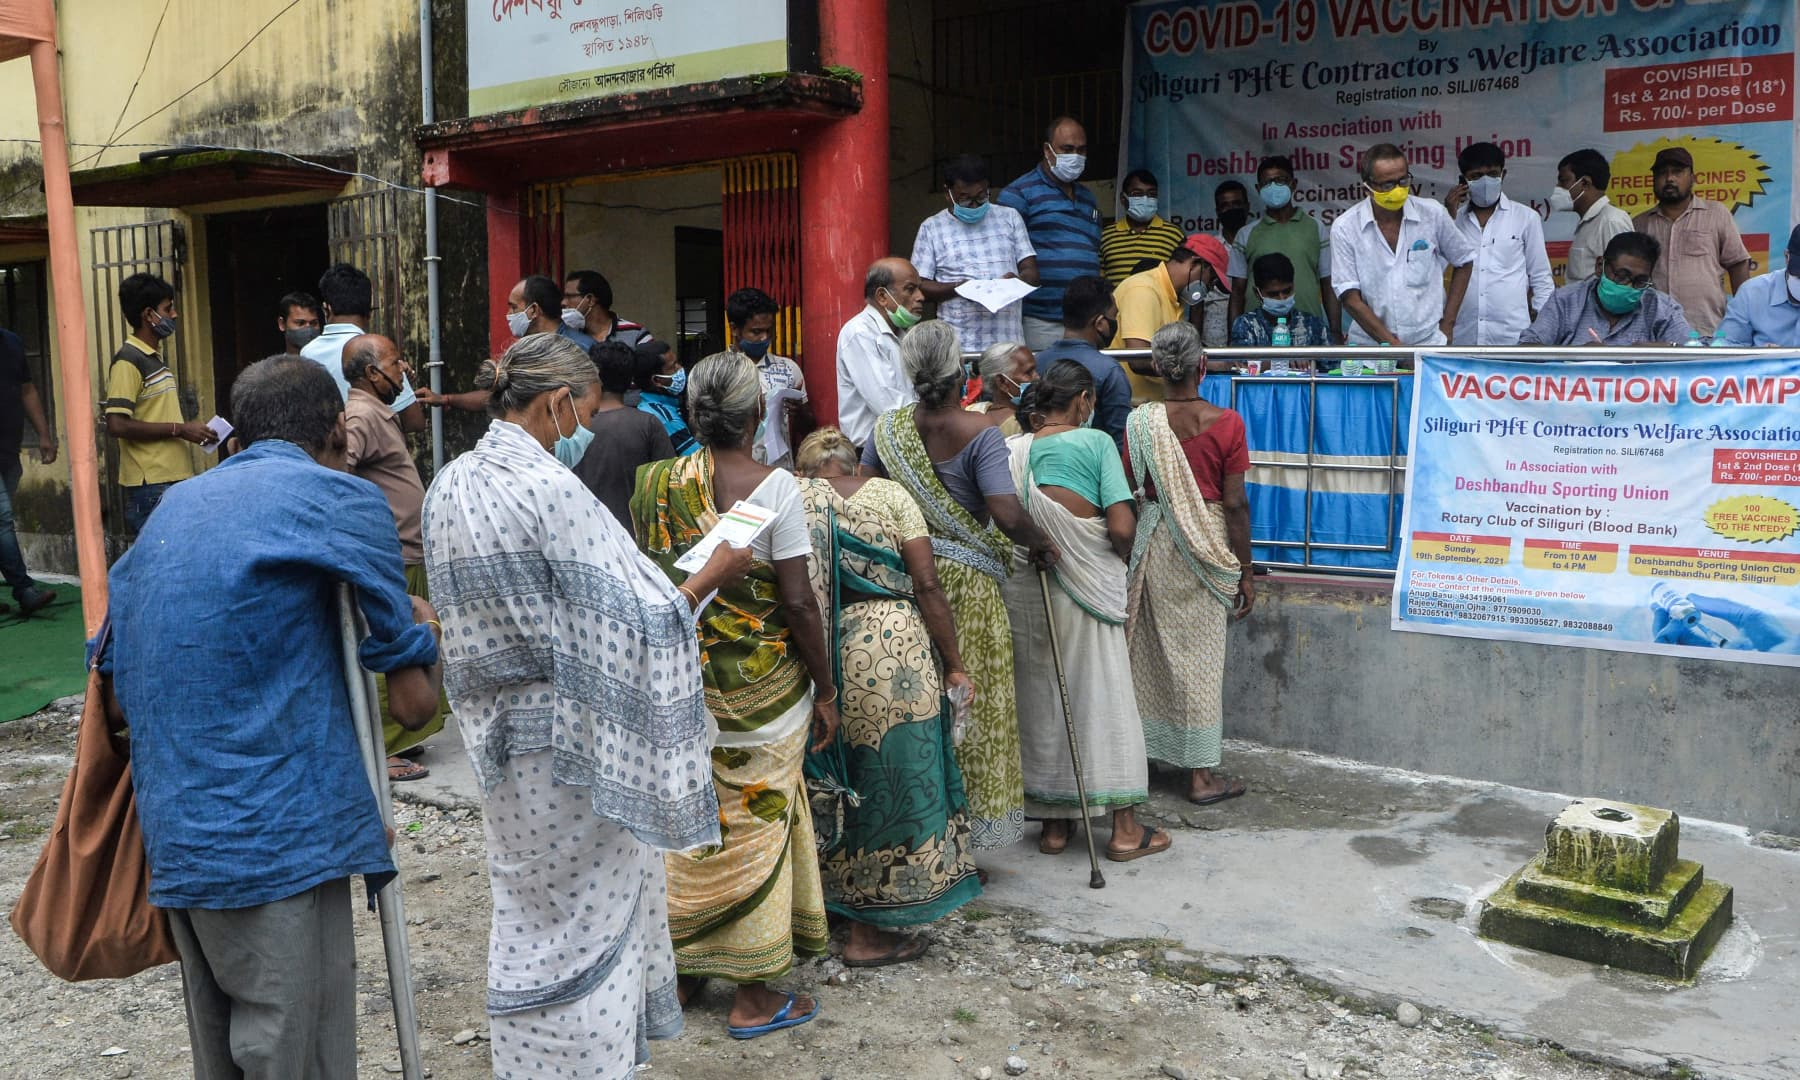 Underprivileged people stand in a queue as they wait to receive a dose of the Covishield vaccine against the Covid-19 coronavirus at a vaccination camp in Siliguri, India, on September 19, 2021. — AFP